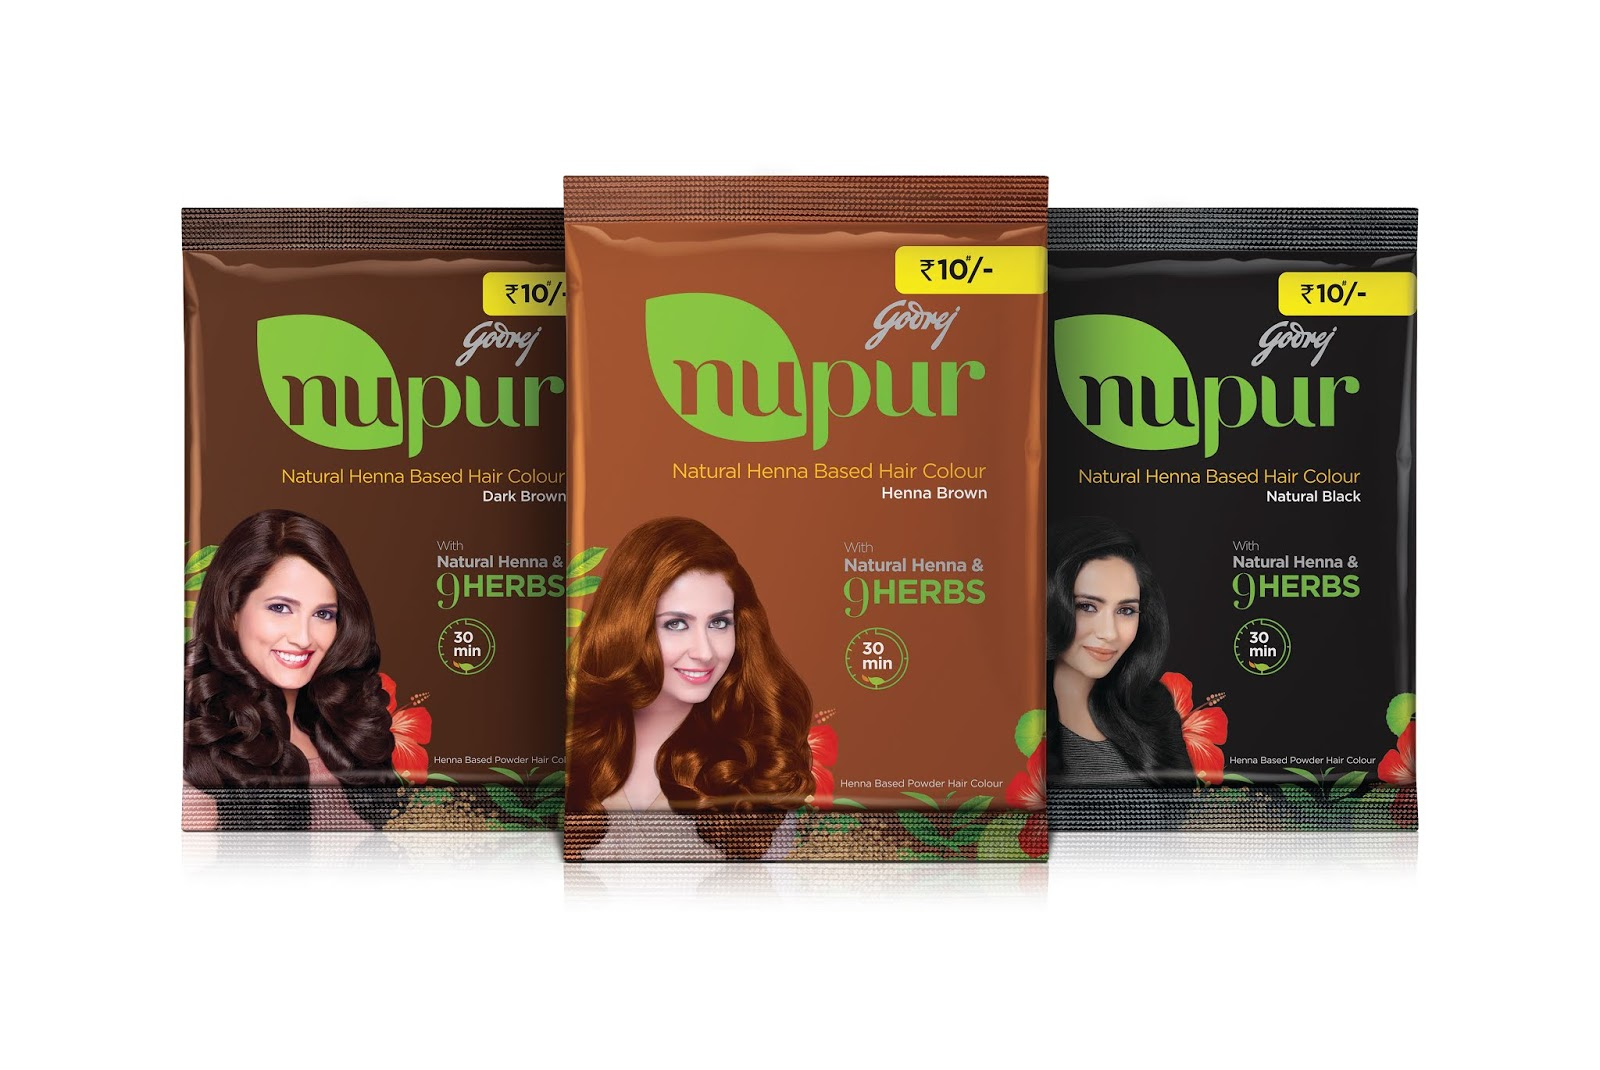 Godrej Nupur Takes A Big Step In Democratising Hair Colour With The